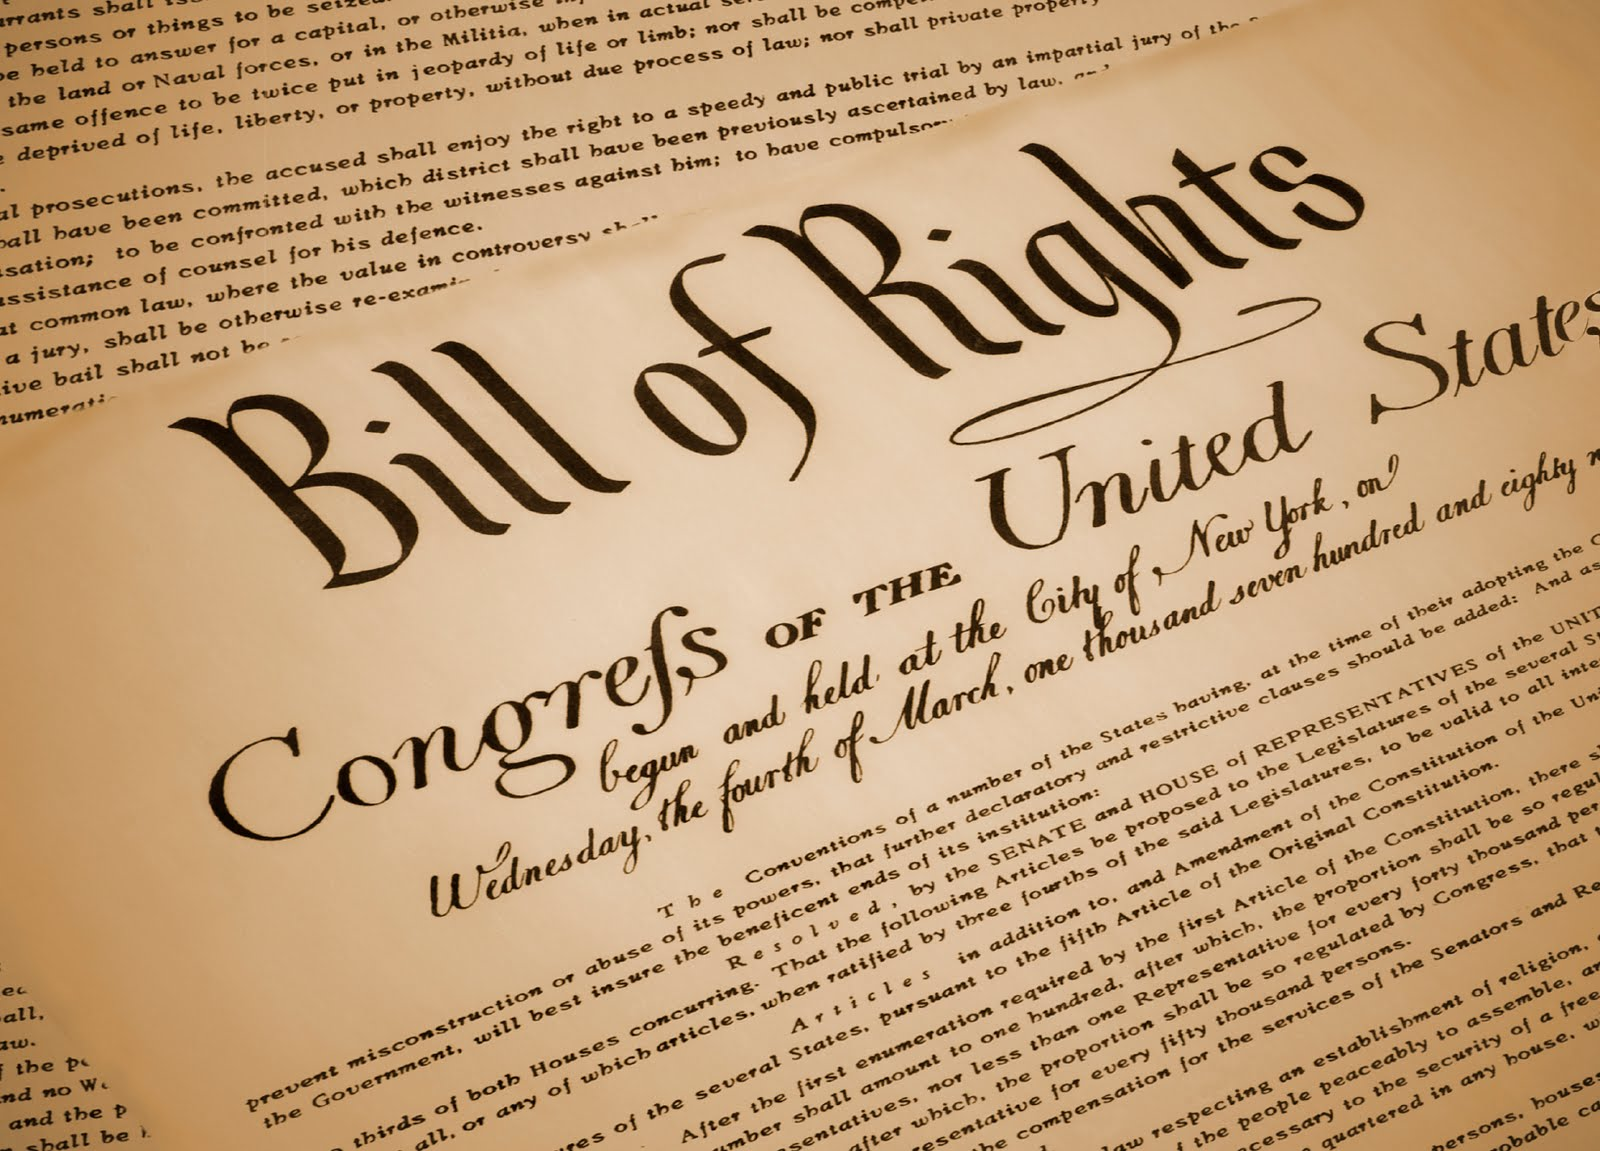 Anderson Triggs: The History of The Bill of Rights